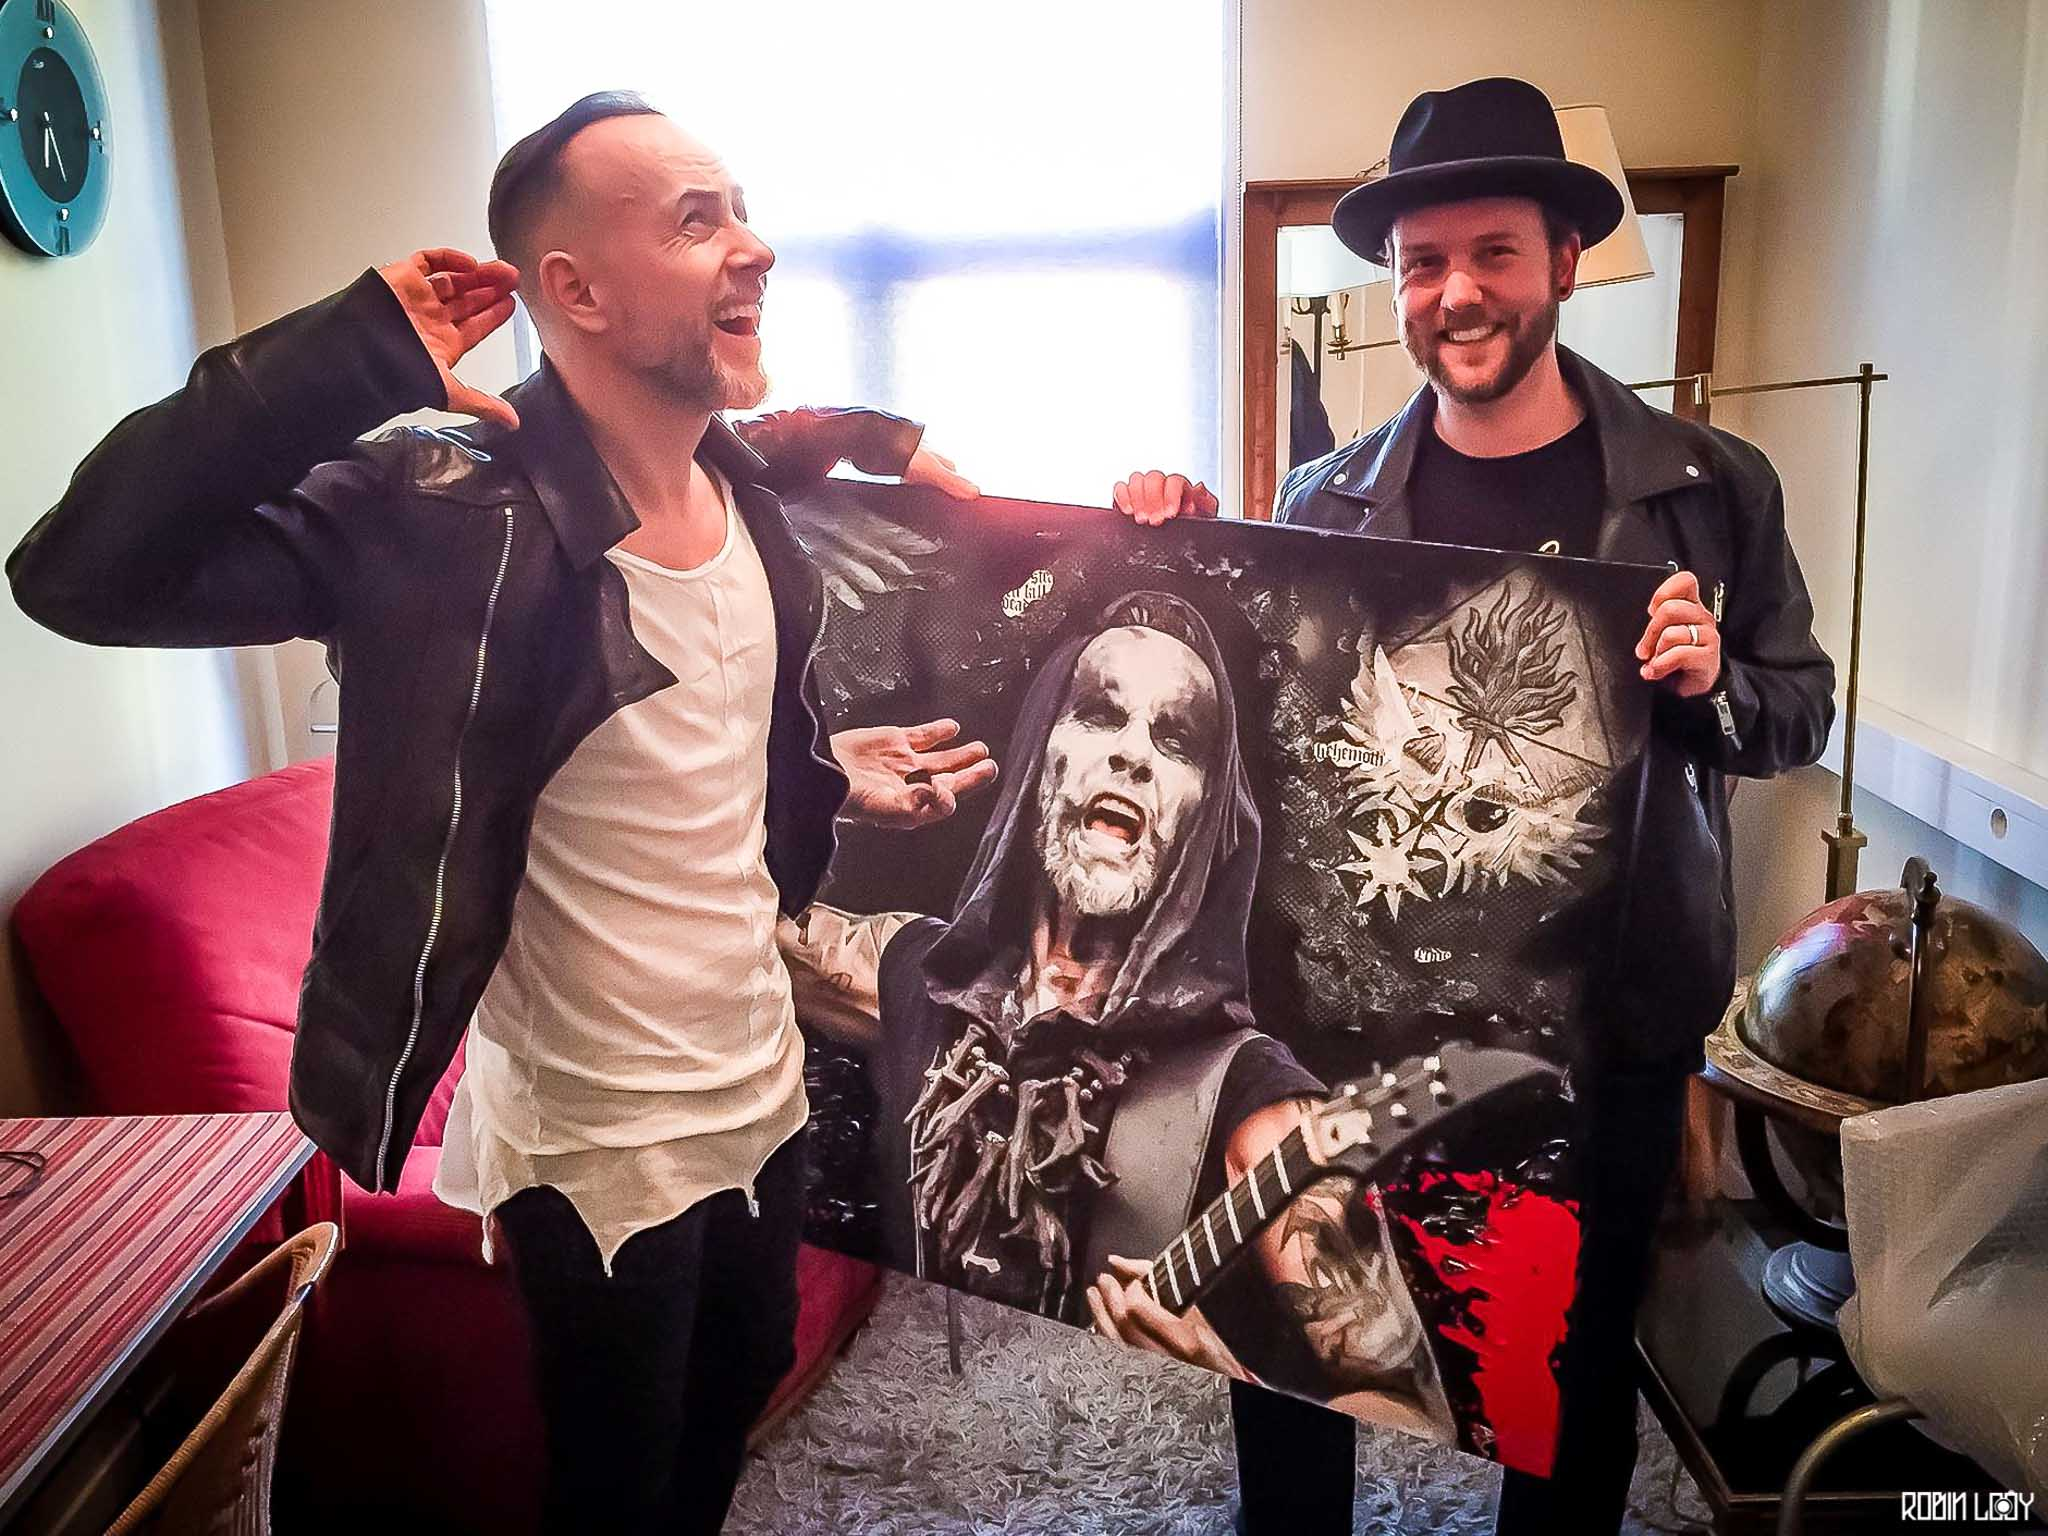 behemoth-nergal-artwork-art-robin-looy-photo